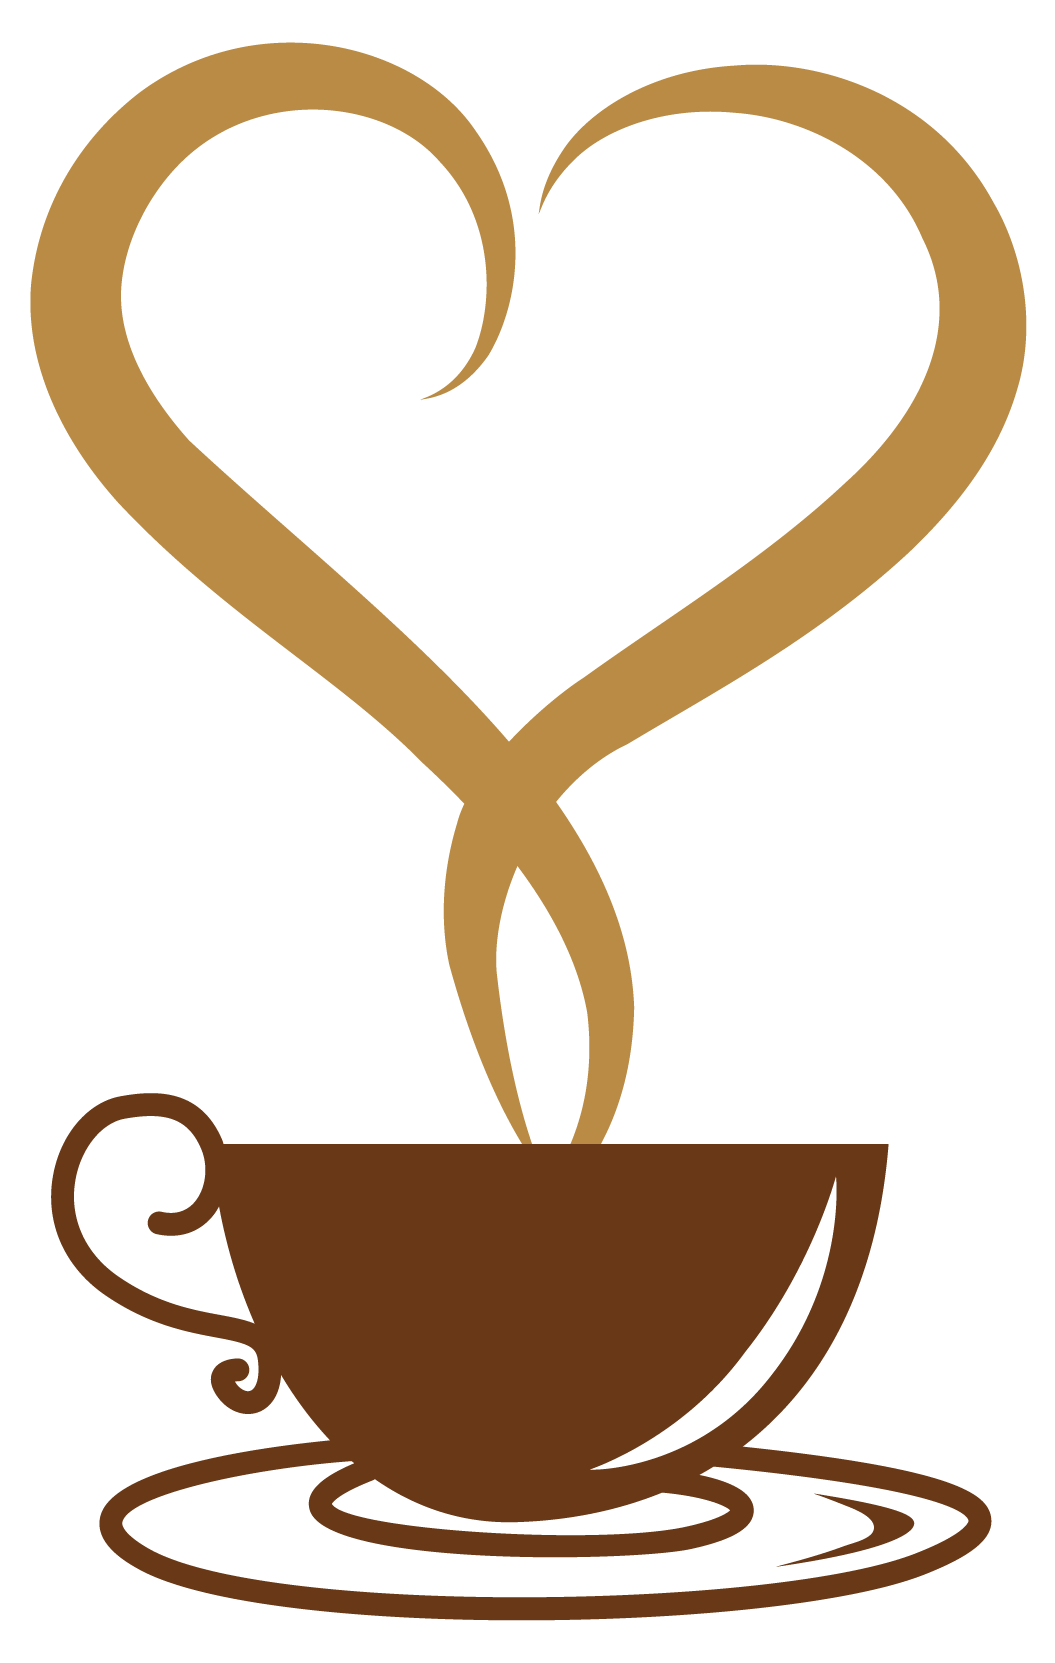 coffee cup starbucks cup clipart top pictures gallery image 14122 rh pinterest com steaming cup of coffee clipart steaming cup of coffee clipart